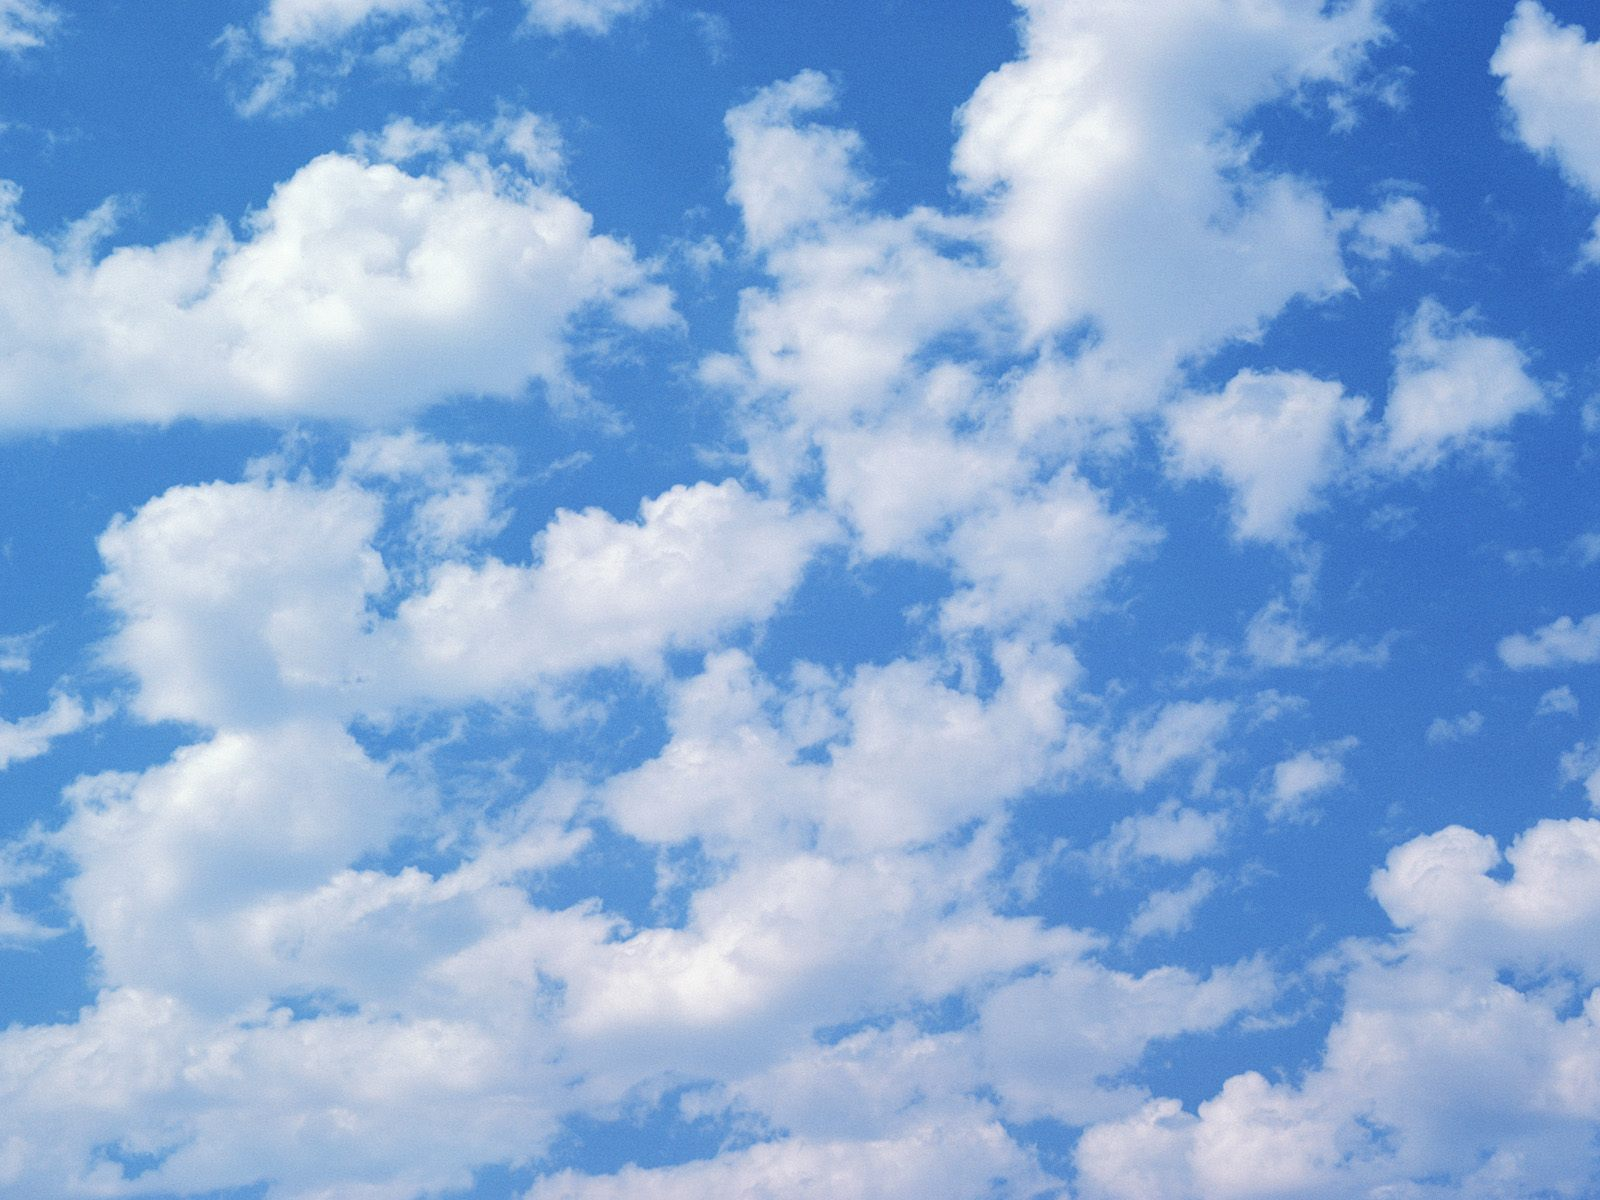 small segmented clouds images background free download #1979